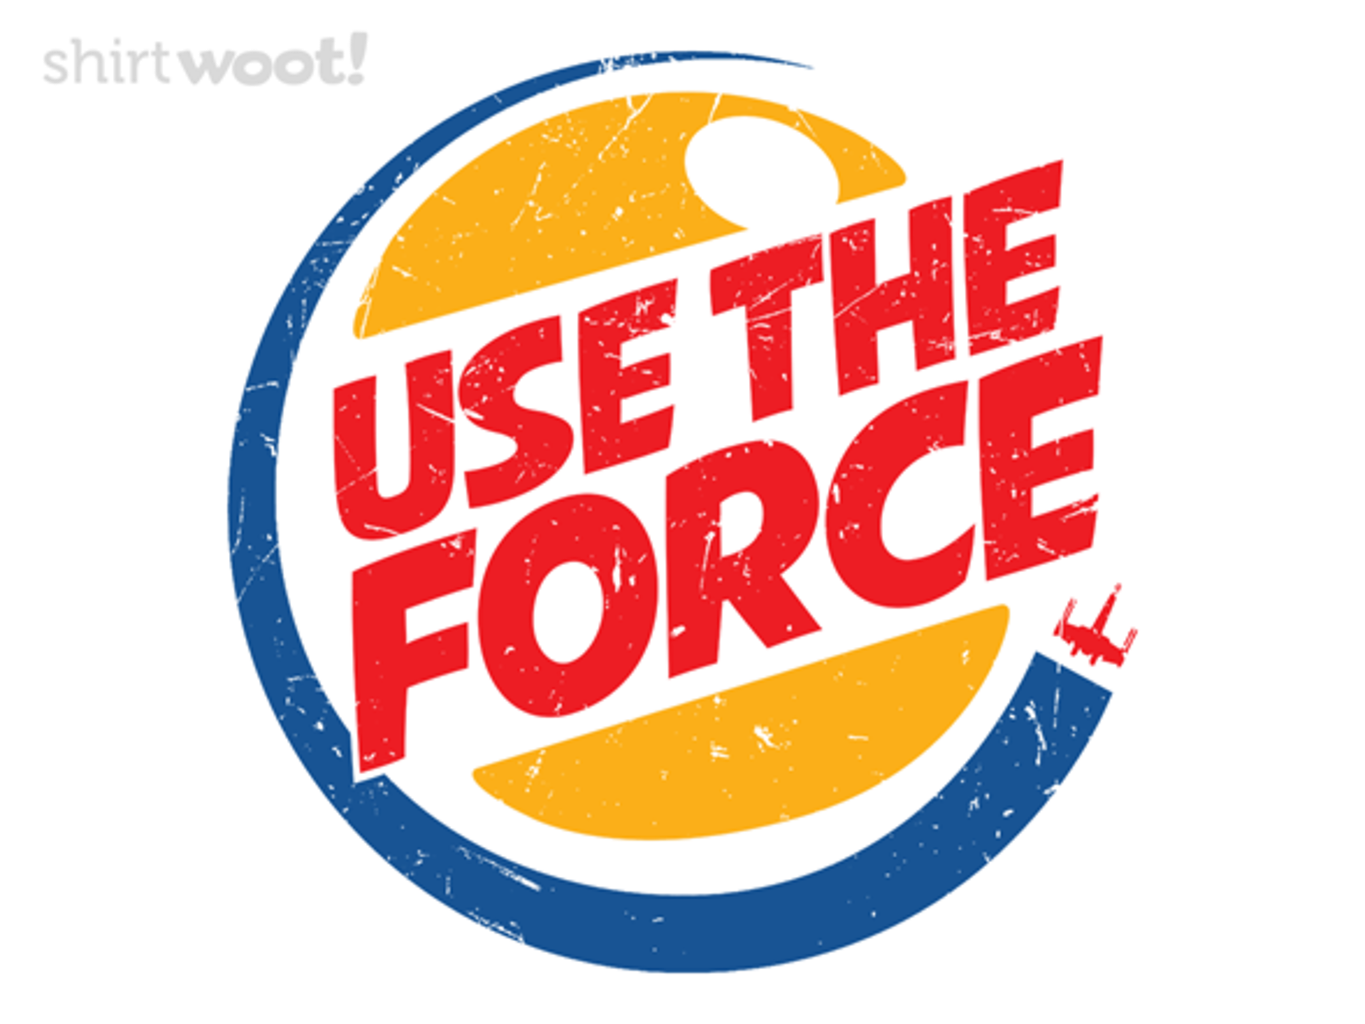 Woot!: Force King